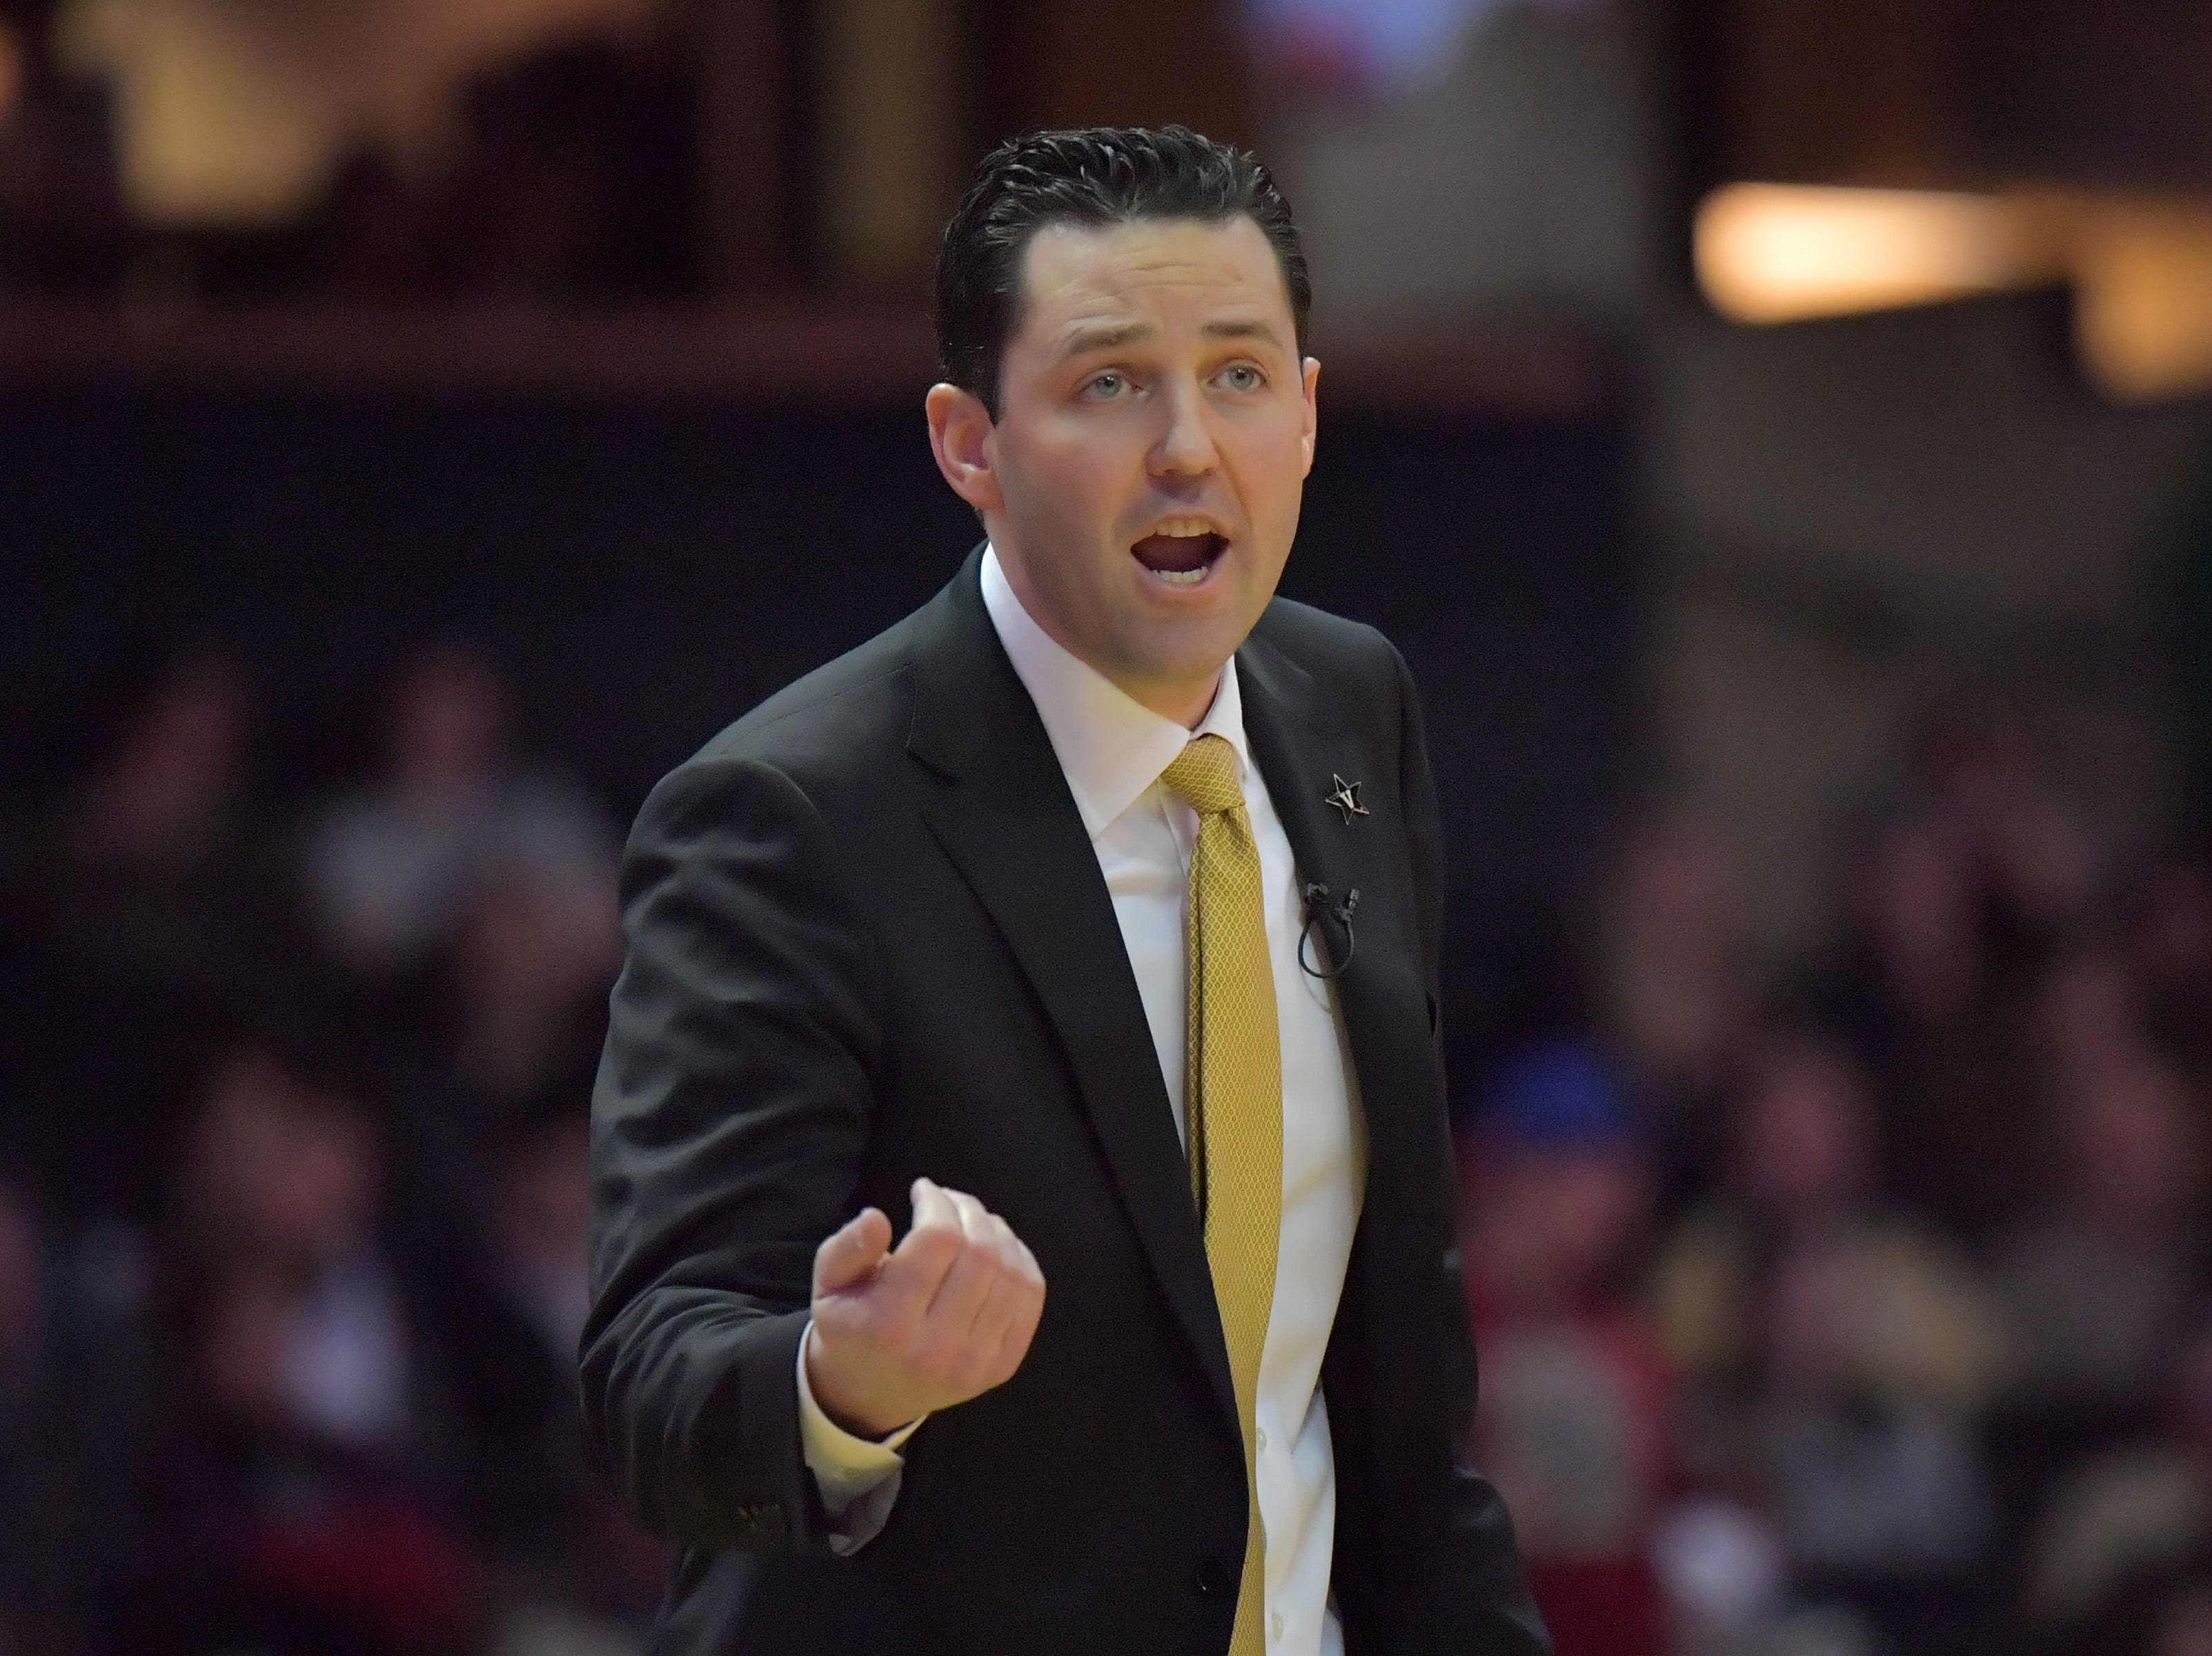 Feb 9, 2019; Nashville, TN, USA; Vanderbilt Commodores head coach Bryce Drew during the first half against the Alabama Crimson Tide at Memorial Gymnasium. Mandatory Credit: Jim Brown-USA TODAY Sports